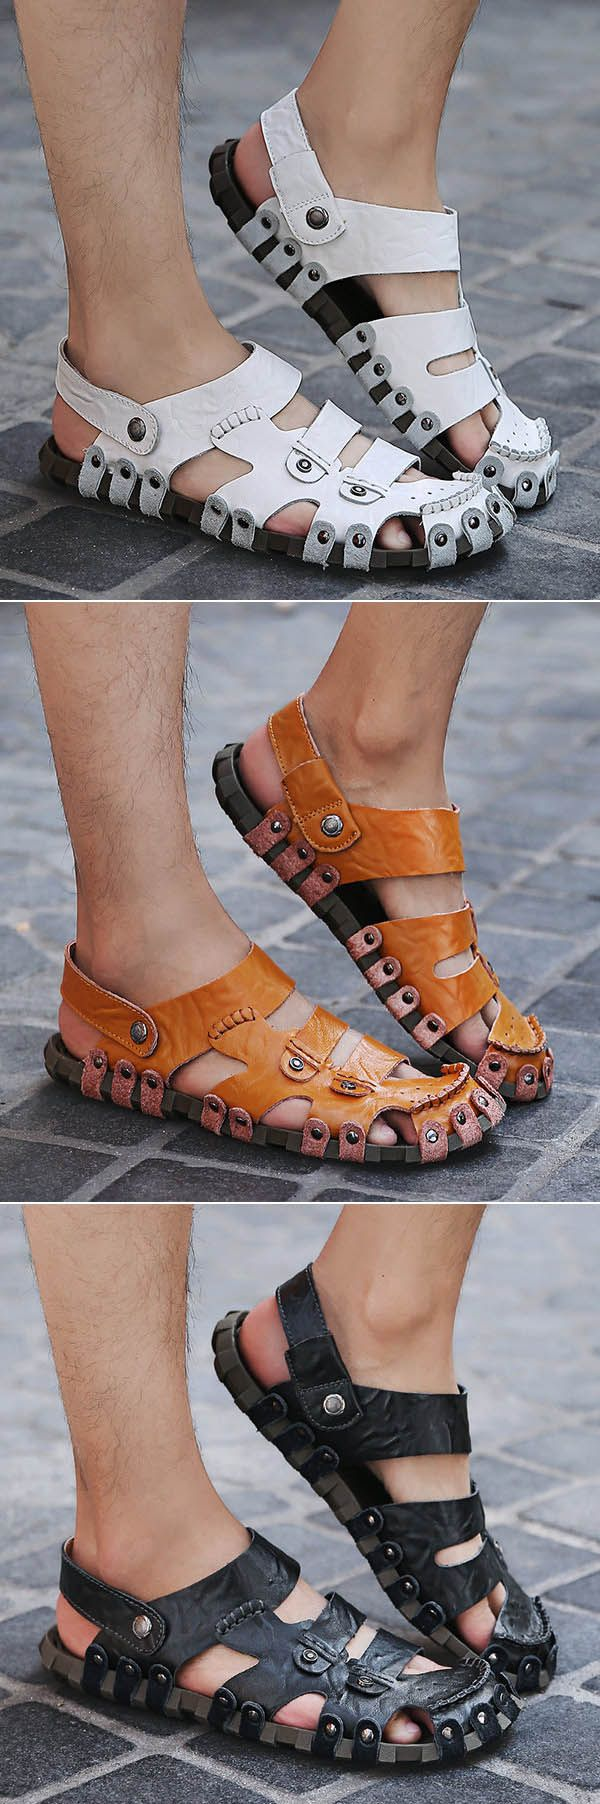 Men Metal Rivet Hole Breathable Soft Outdoor Leather Closed Toe Sandals